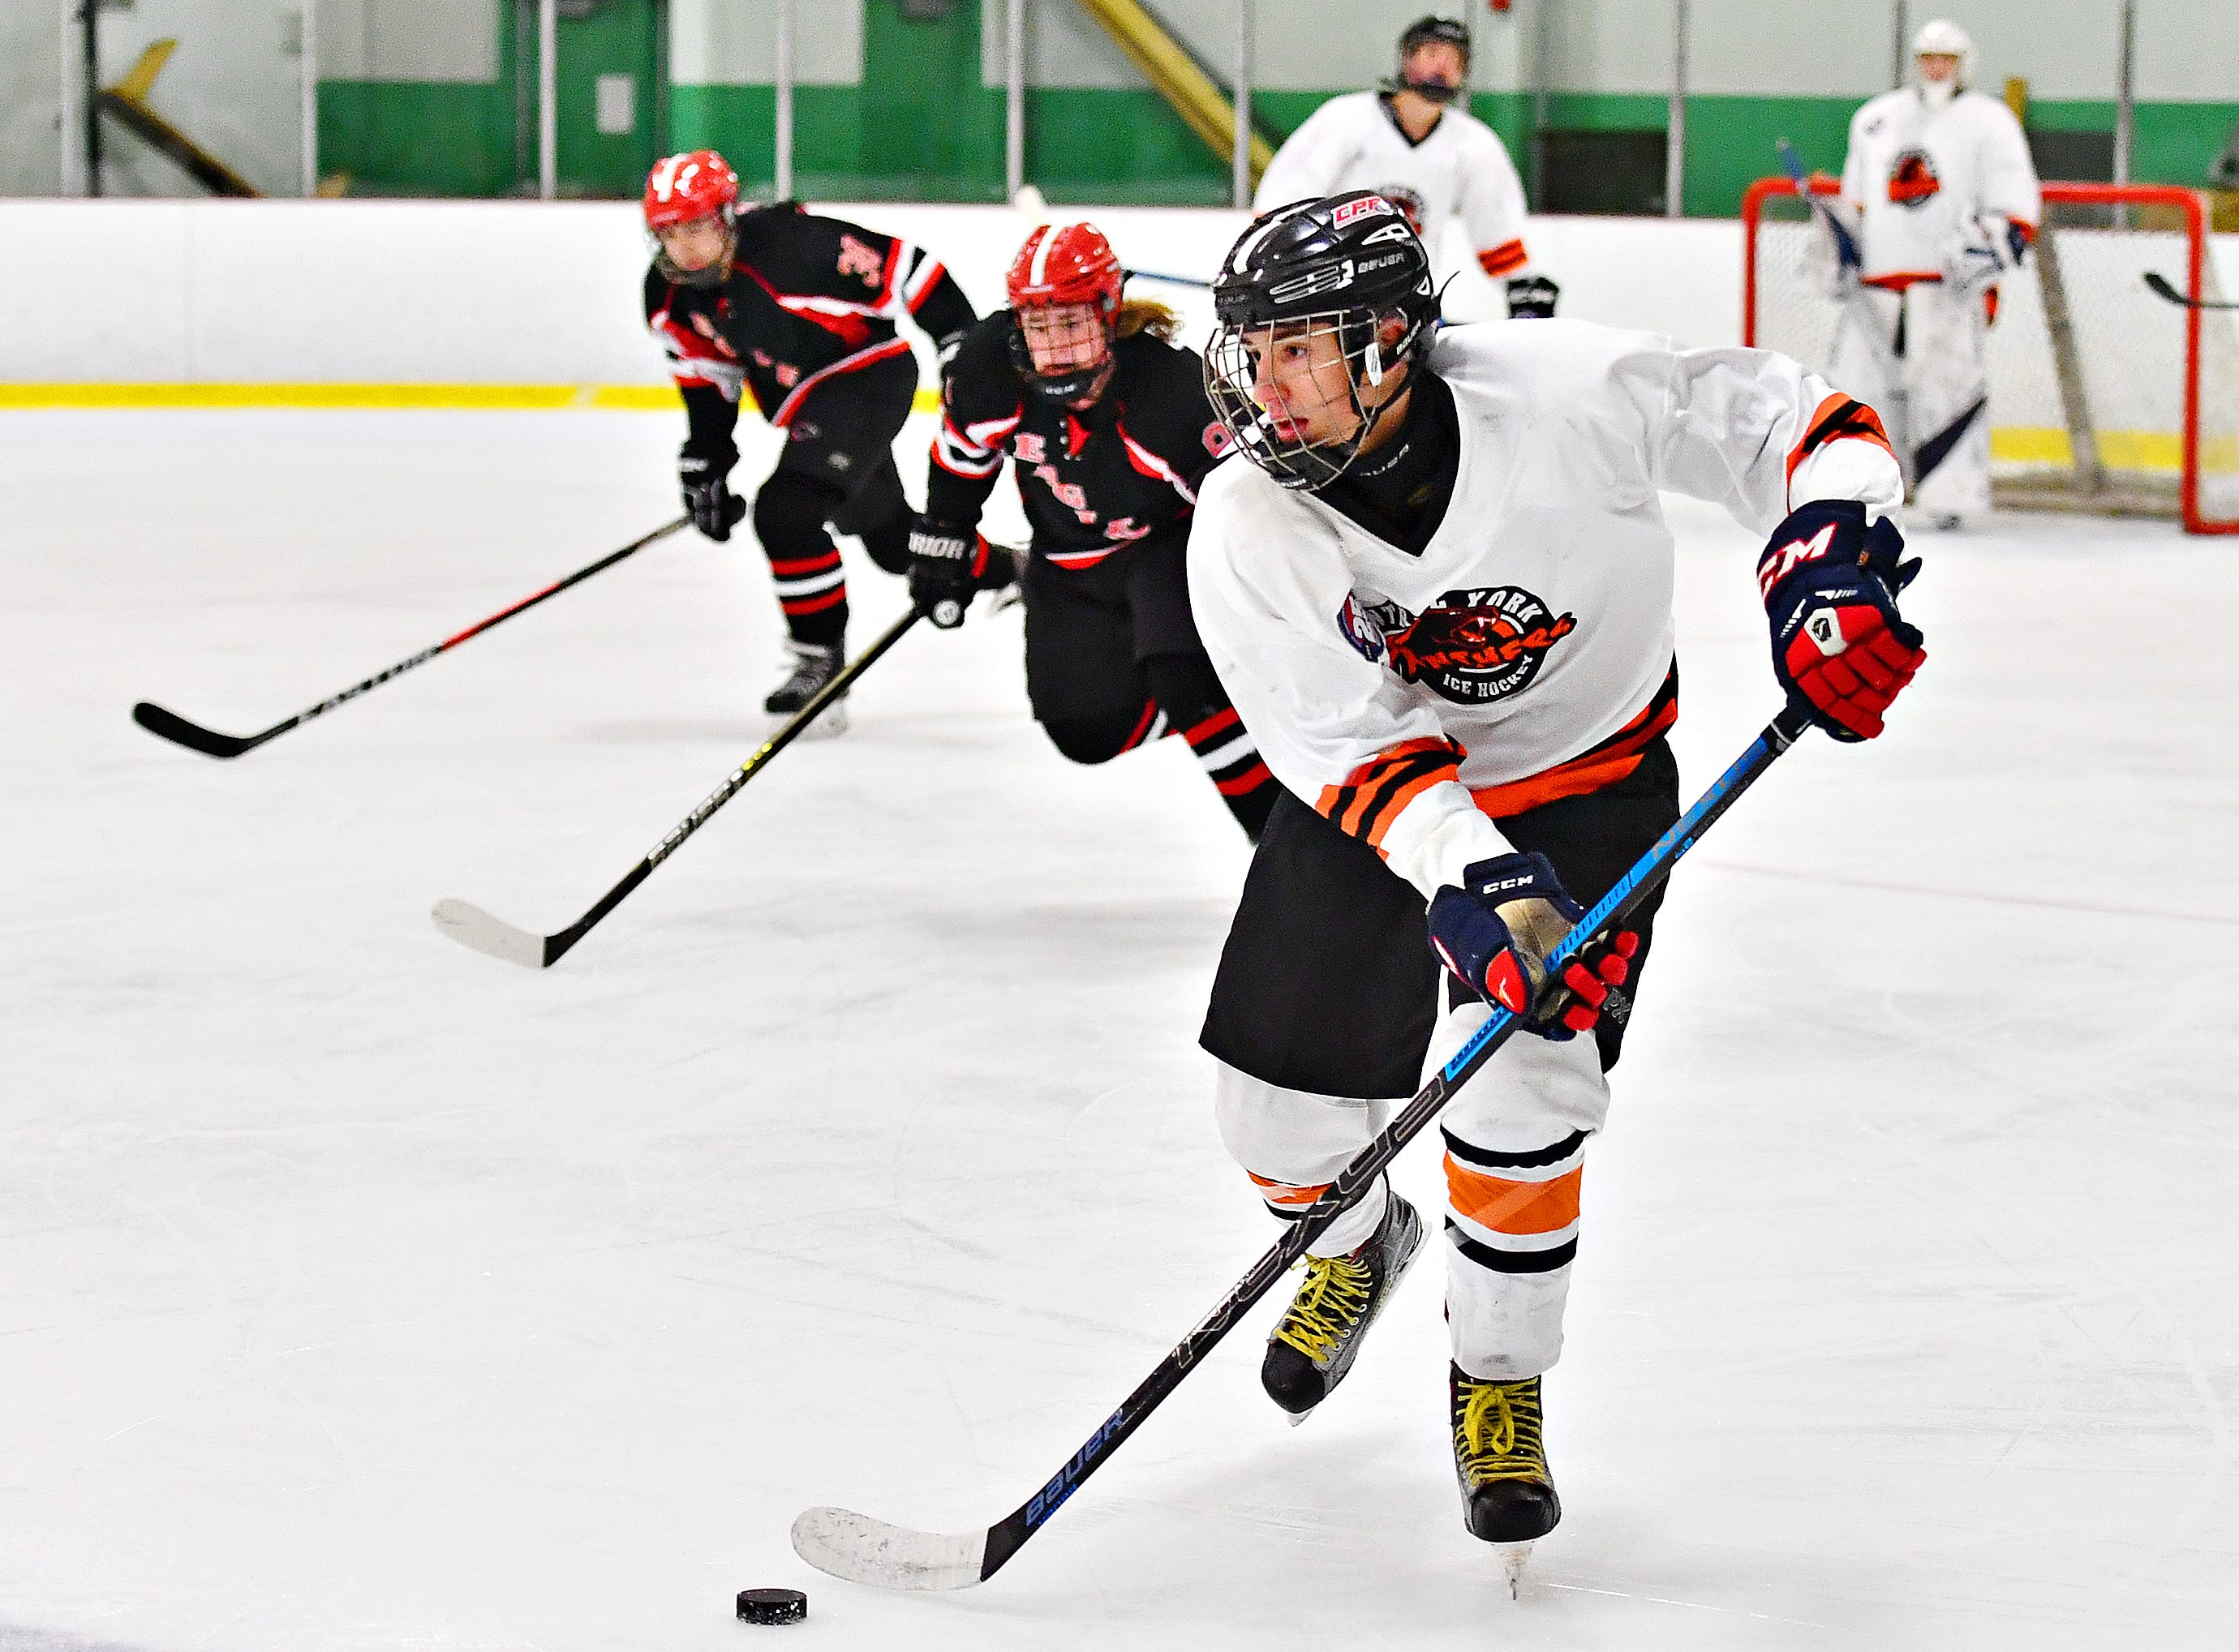 Central York's Sean Barba drives the puck across the ice during ice hockey action against Cumberland Valley at York Ice Arena in York City, Wednesday, Dec. 5, 2018. Dawn J. Sagert photo